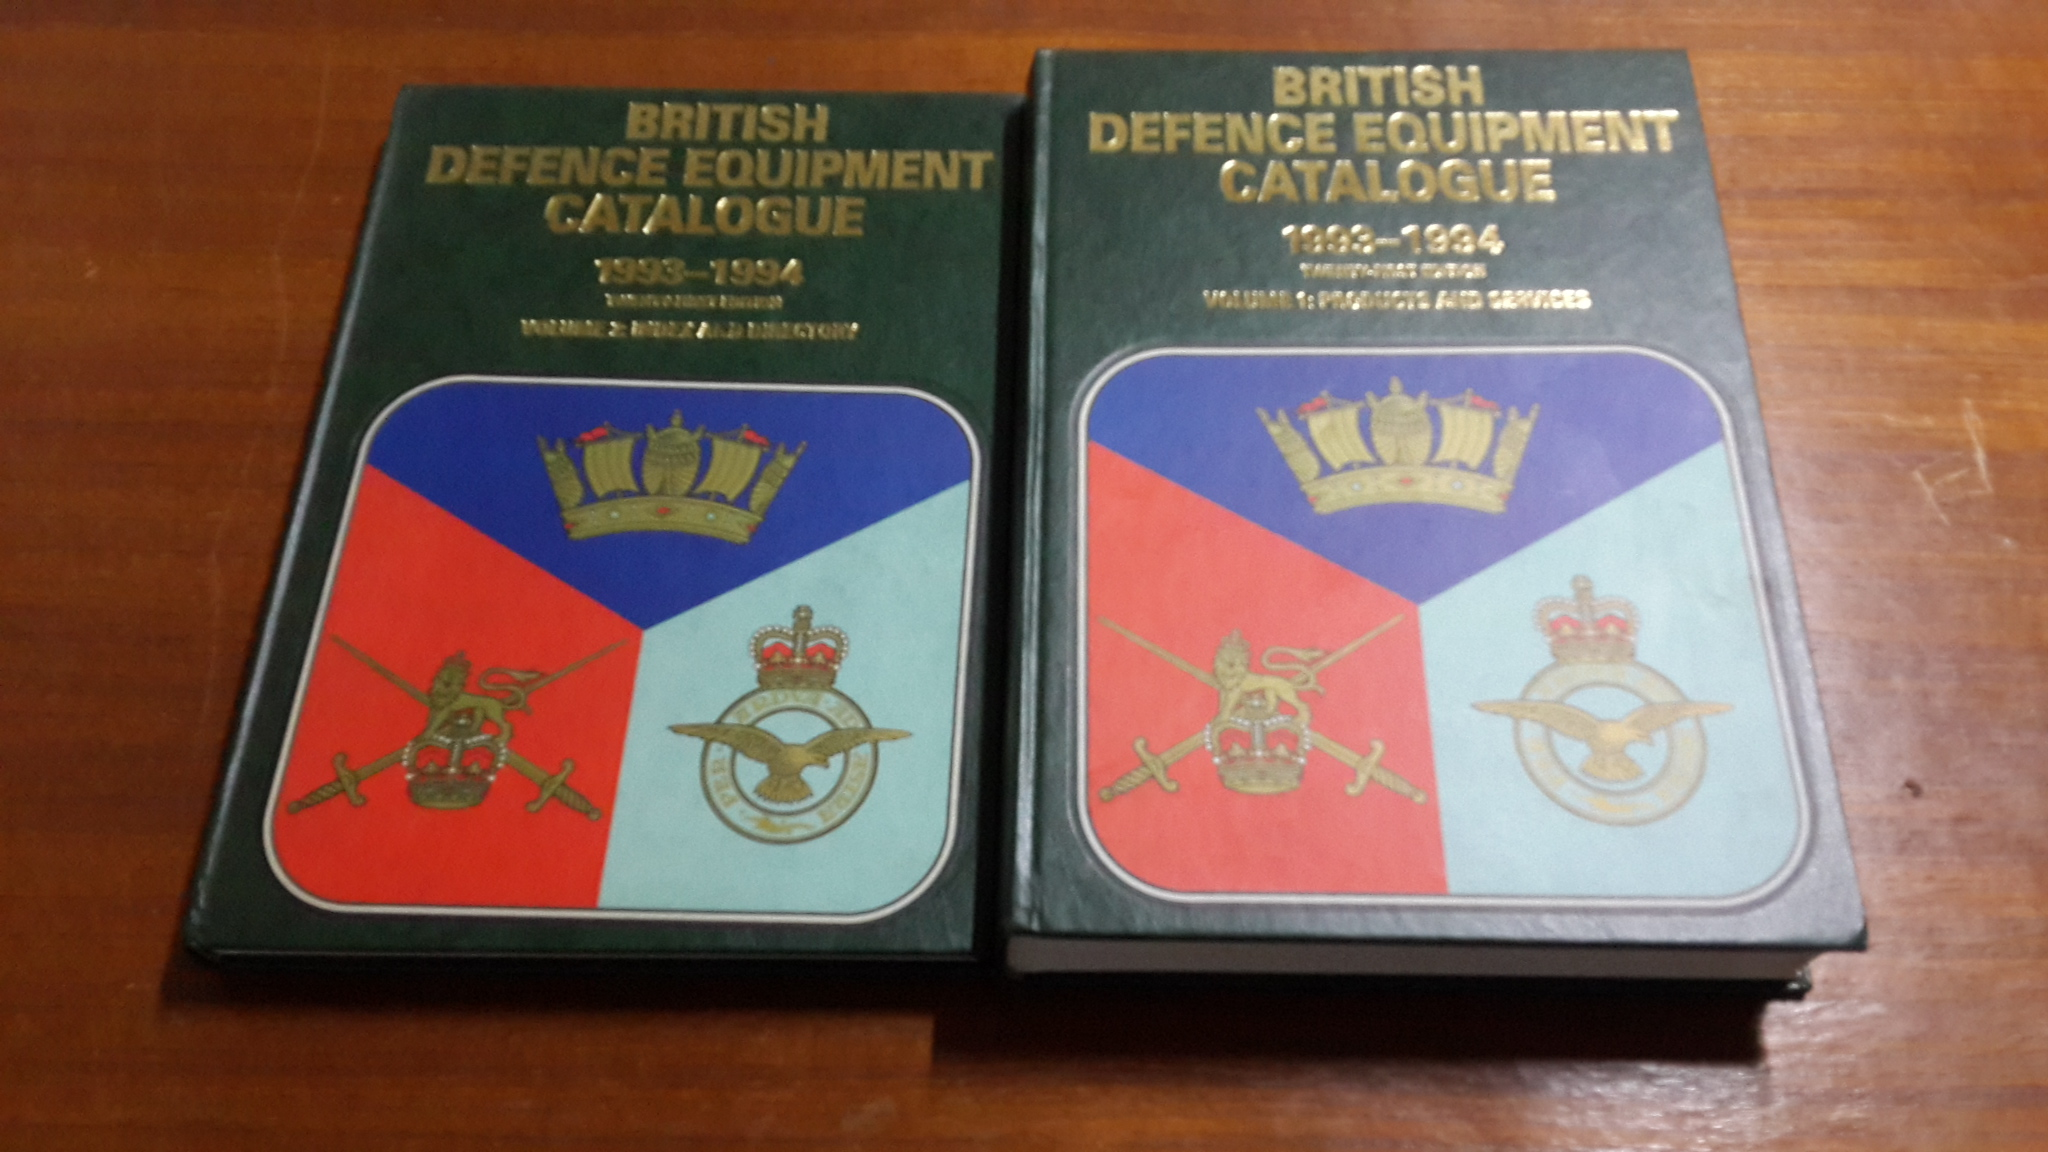 BRITISH DEFENCE EQUIPMENT CATALOGUE 1993-1994 TWENTY-FIRST EDITION : VOLUME 1-2